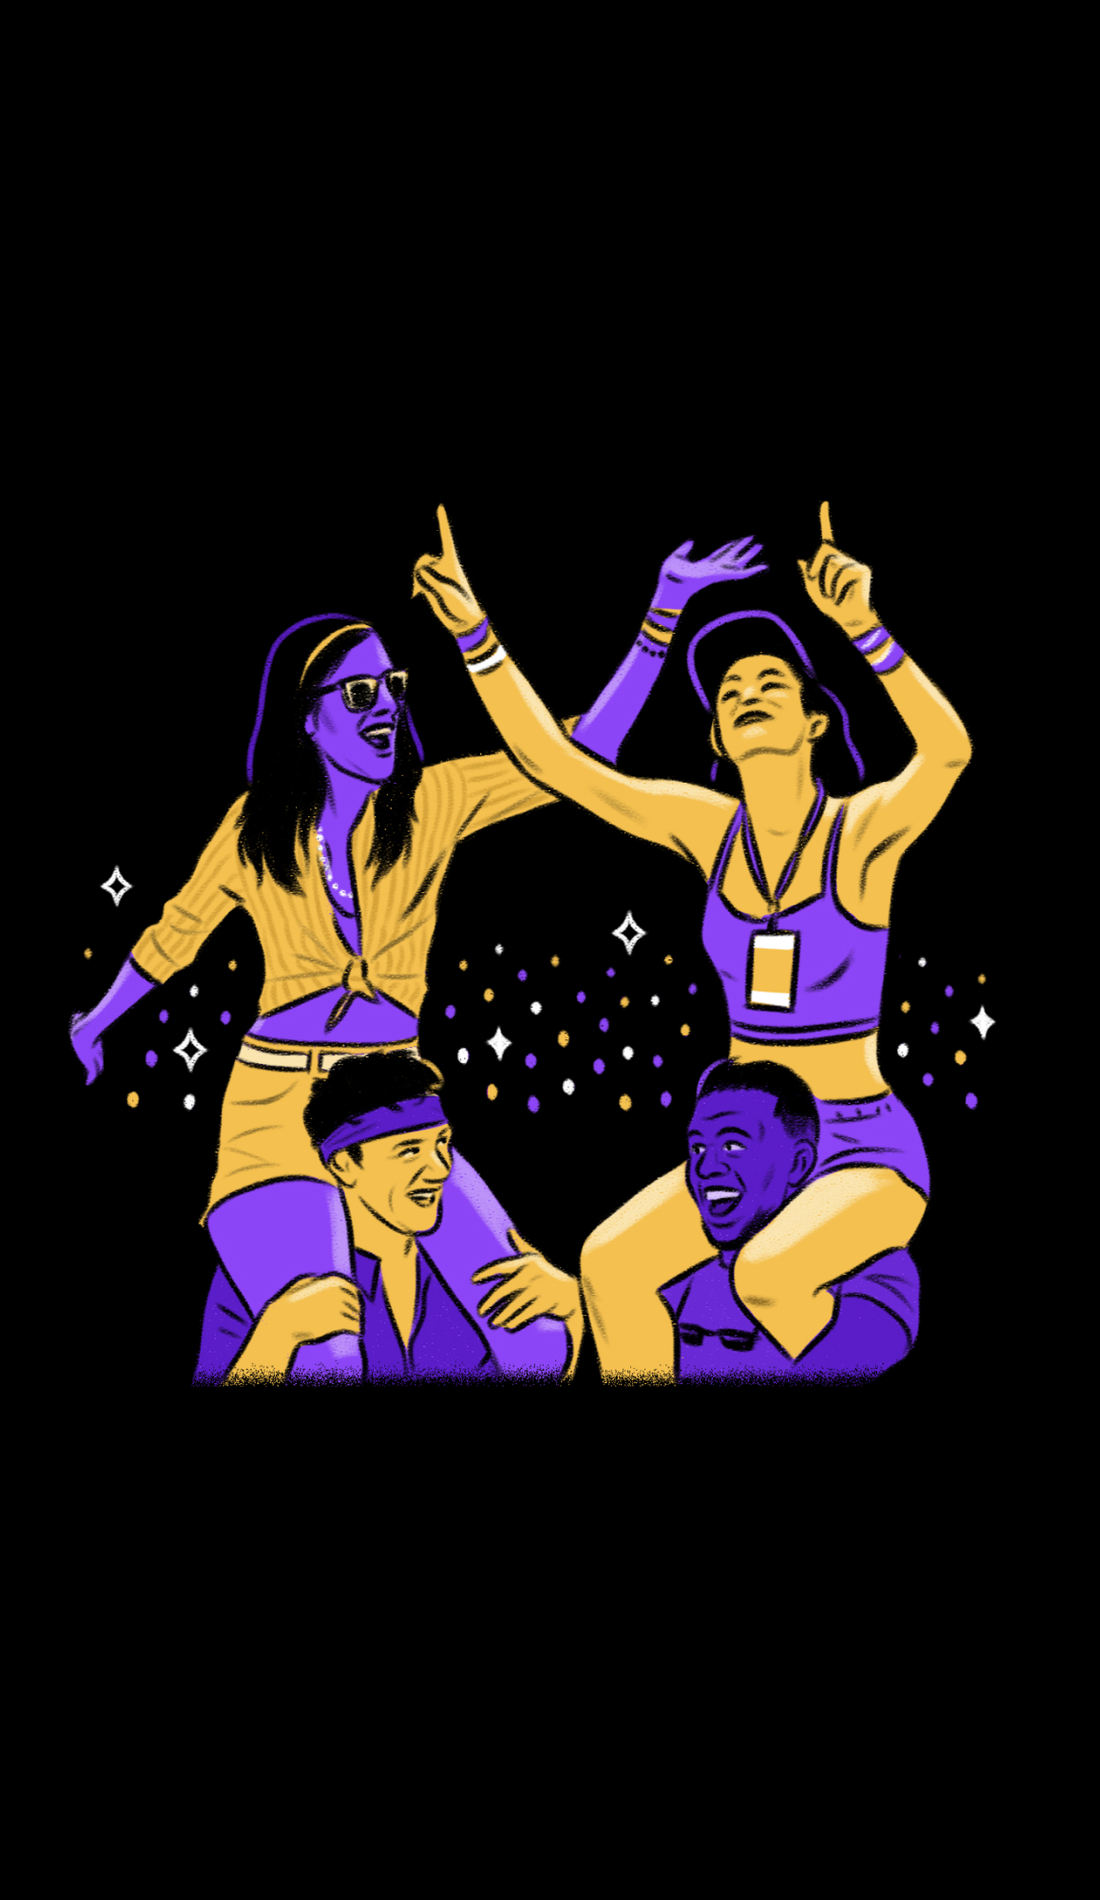 A The Crawfish Festival live event